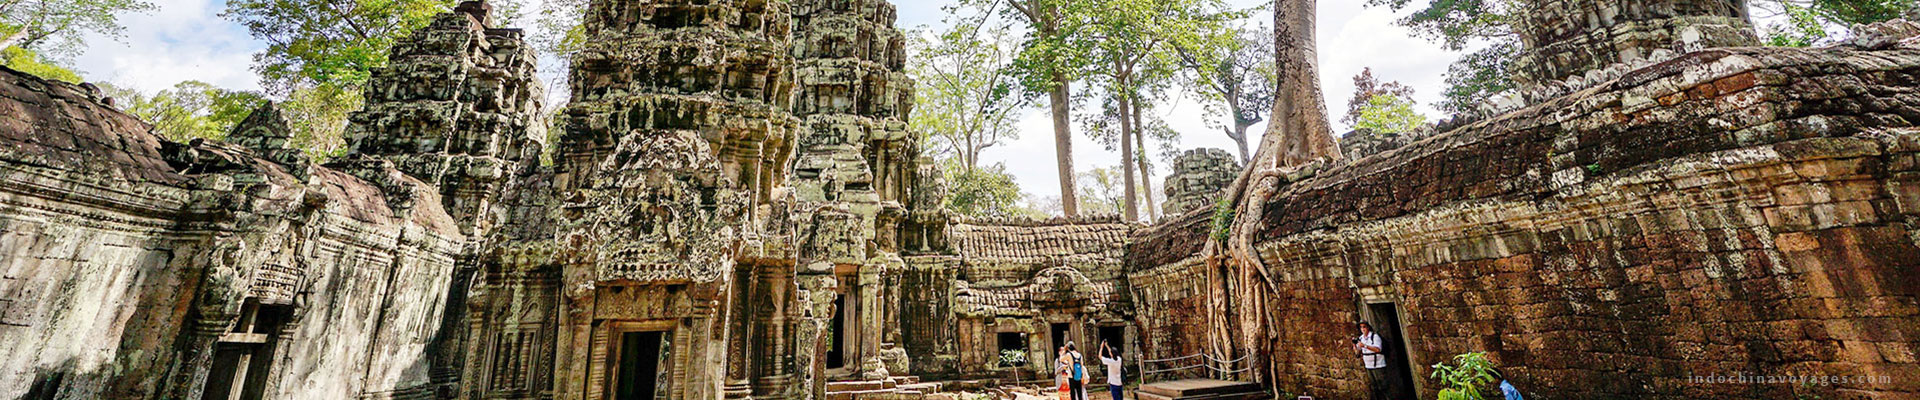 3 places to visit in Cambodia